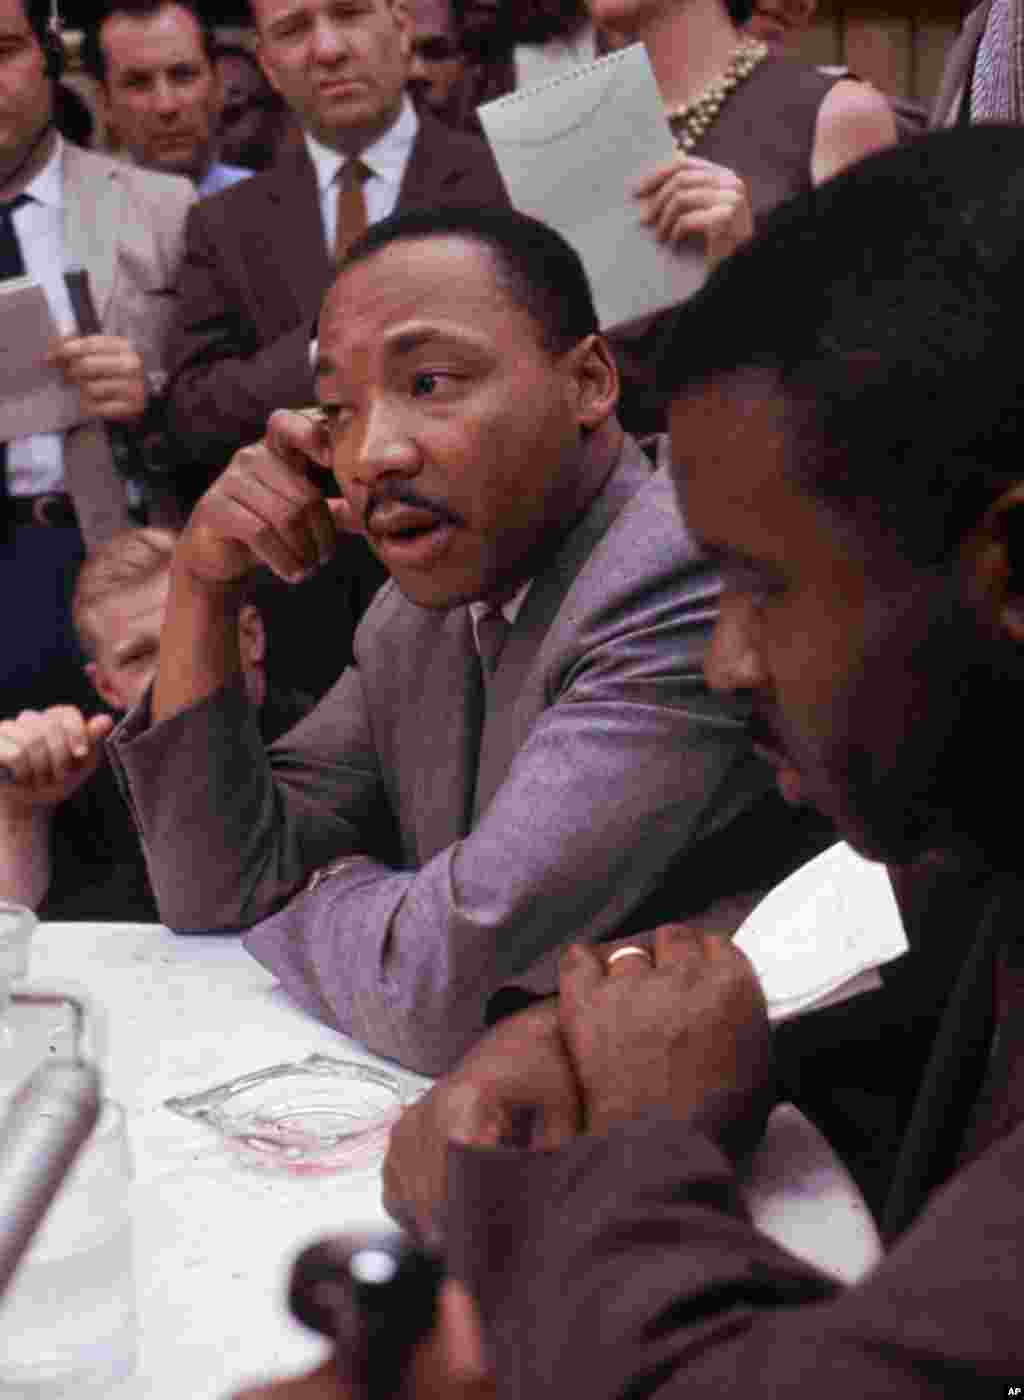 Martin Luther King Jr. attends a news conference in Birmingham, Alabama, May 9, 1963.